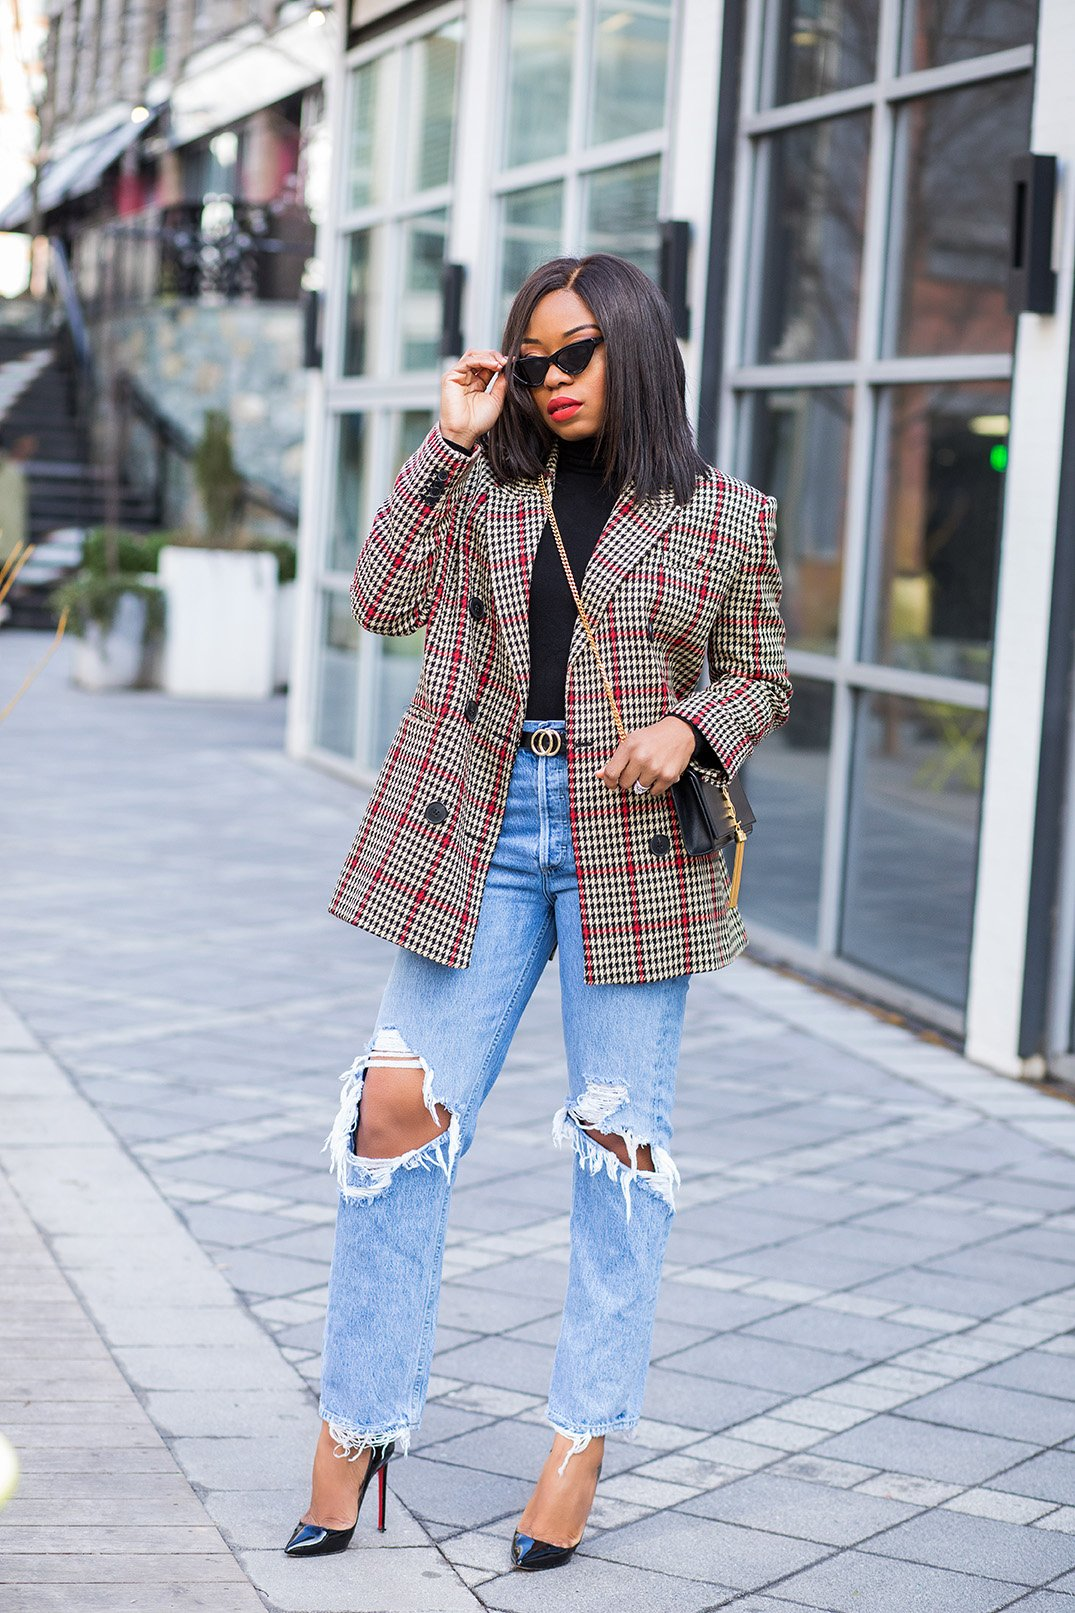 stella-adewunmi-shares-casual-outfit-in-jeans-and-check-blazer